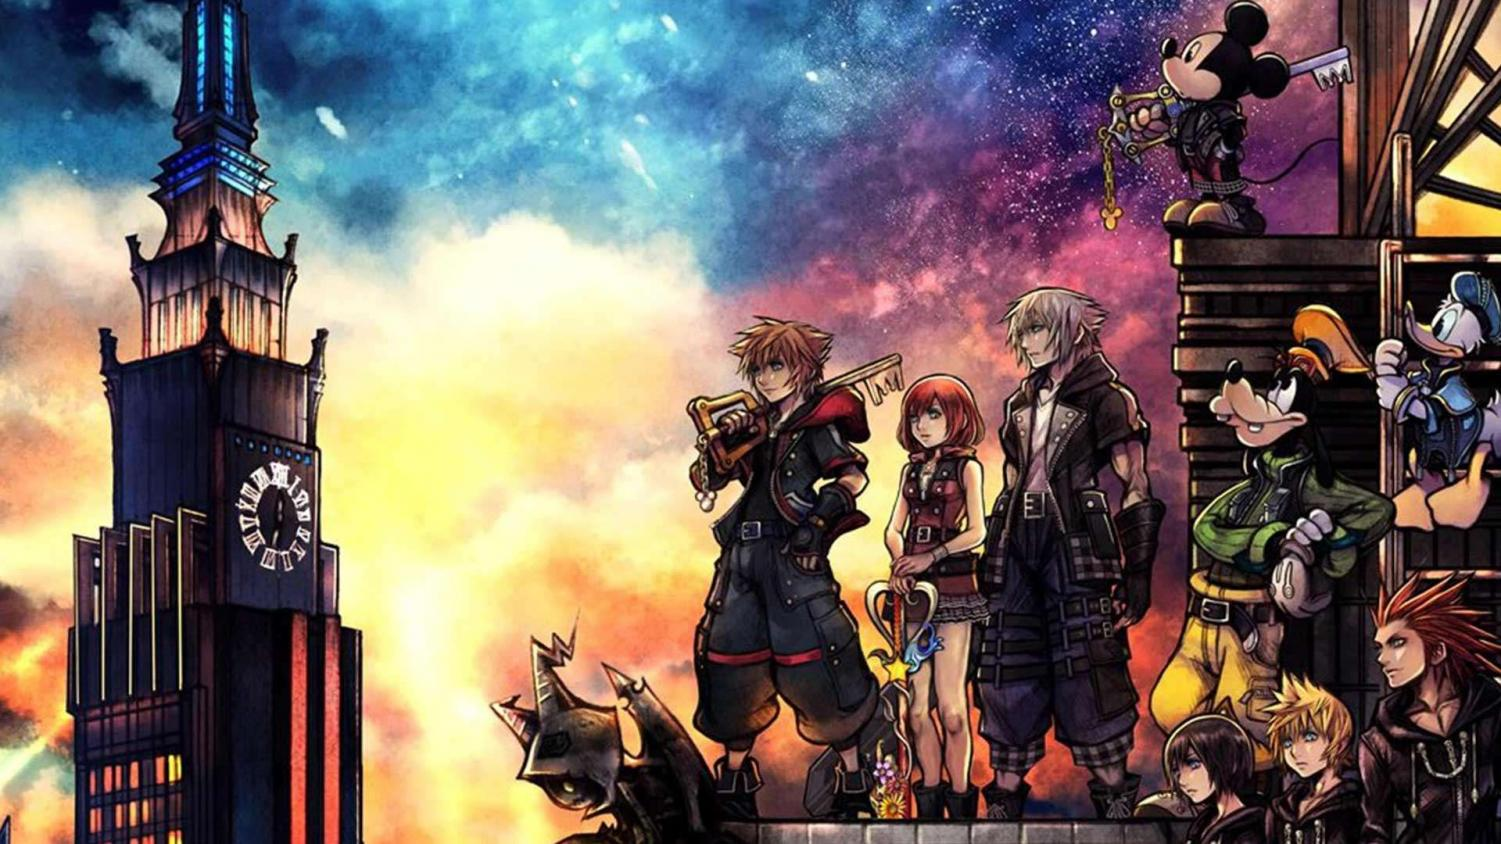 Promotional poster for Kingdom Hearts III